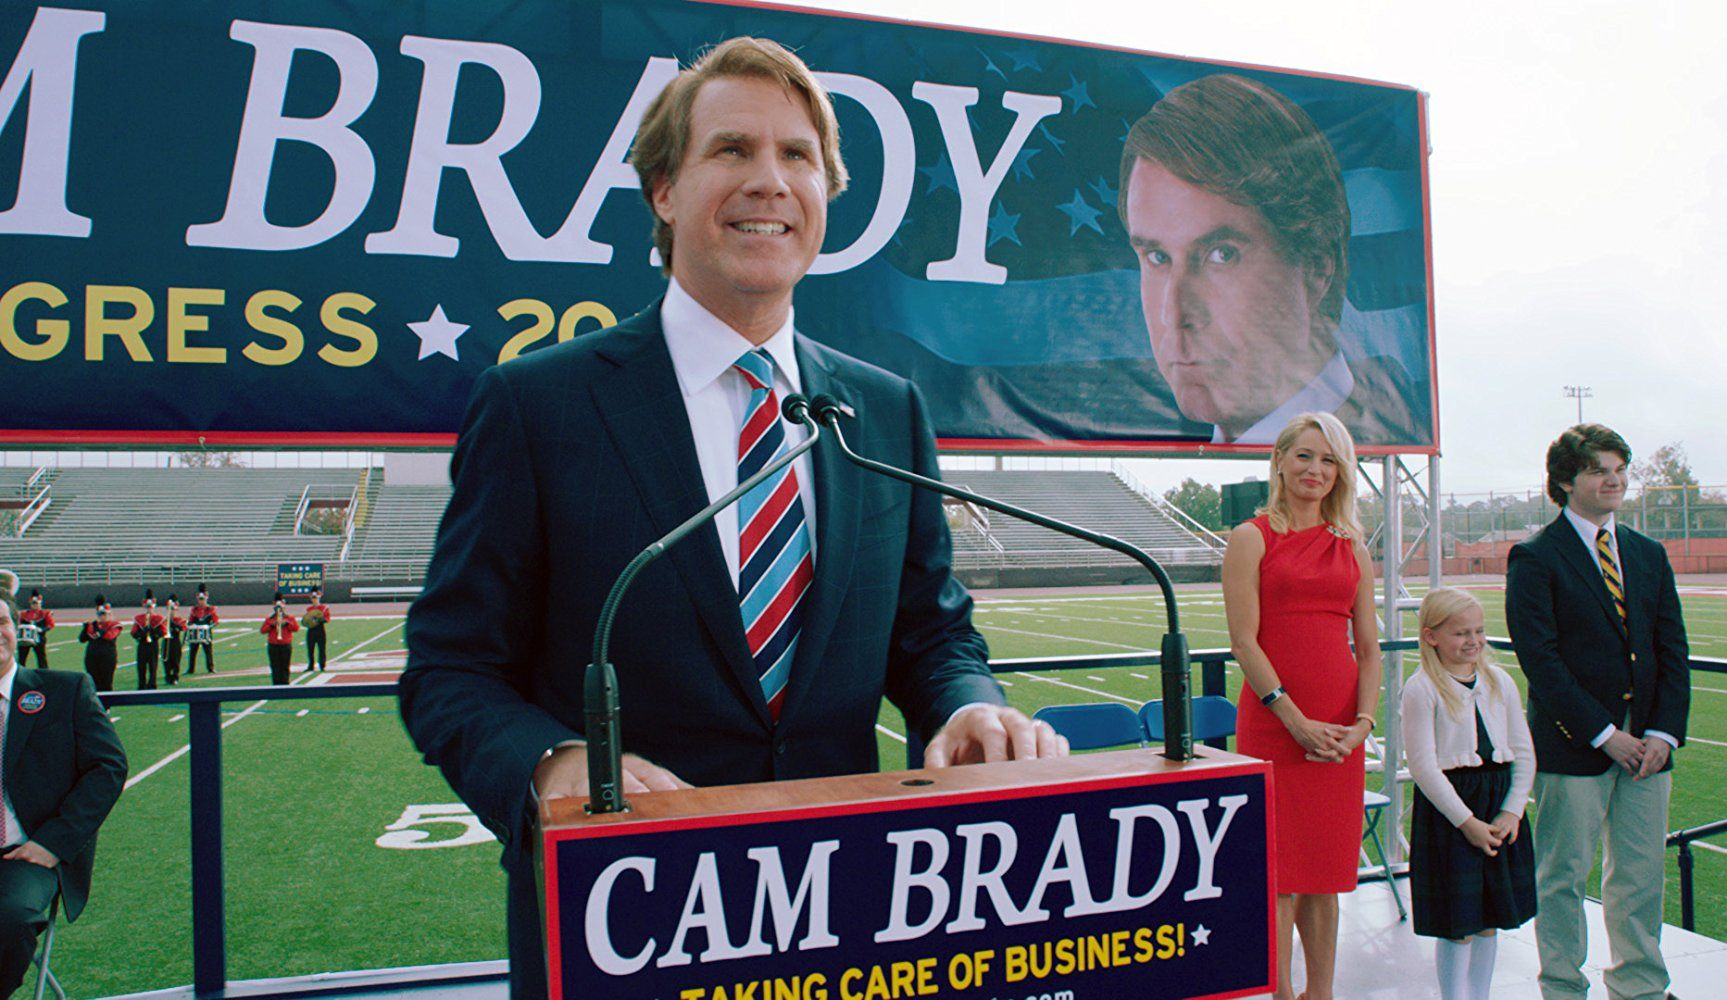 Will Ferrell as Cam Brady in The Campaign